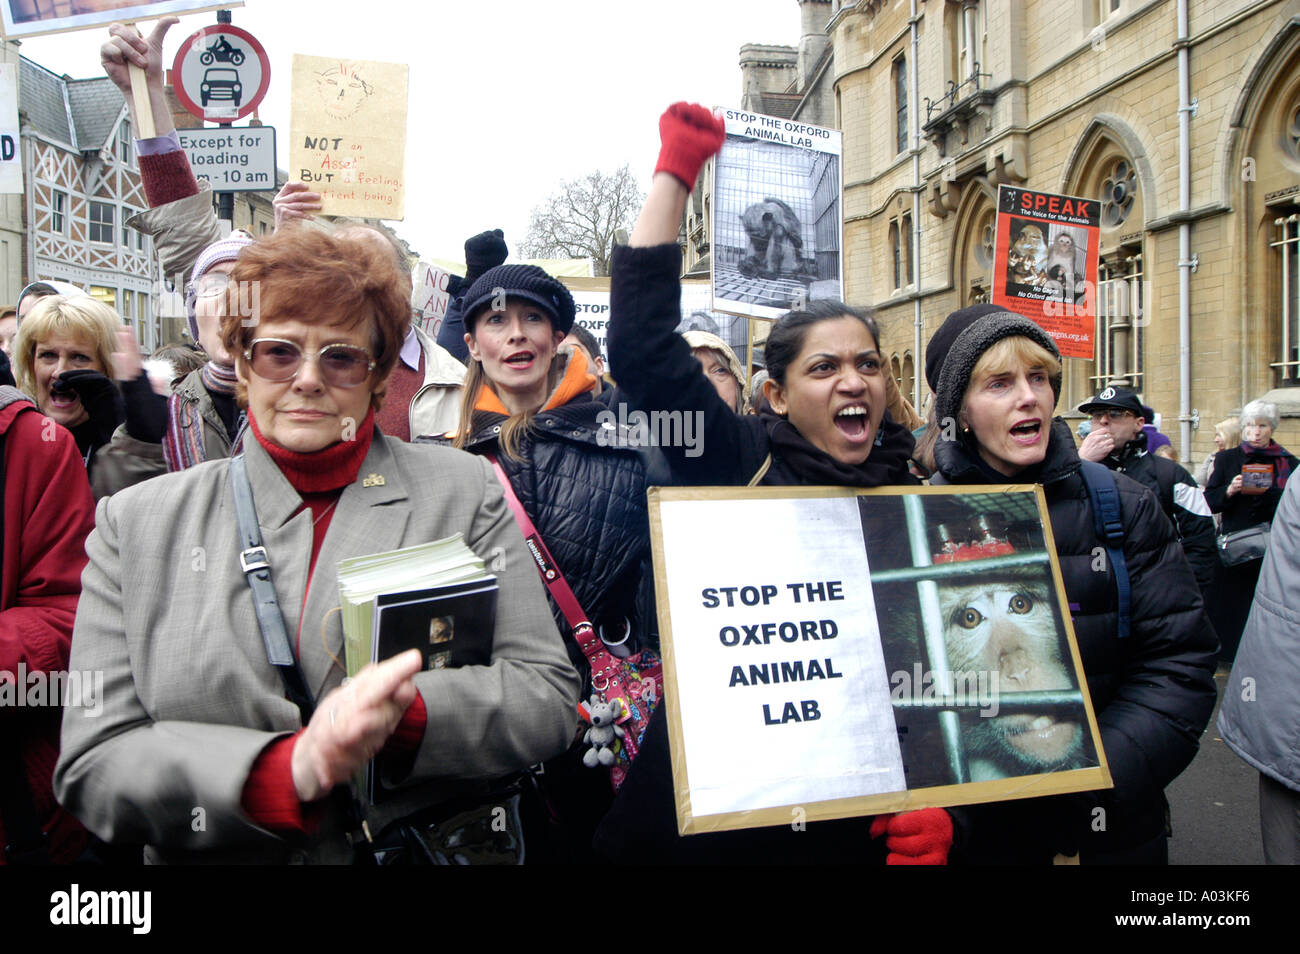 Animal rights protesters on a march in Oxford against the building of an animal laboratory by Oxford University - Stock Image